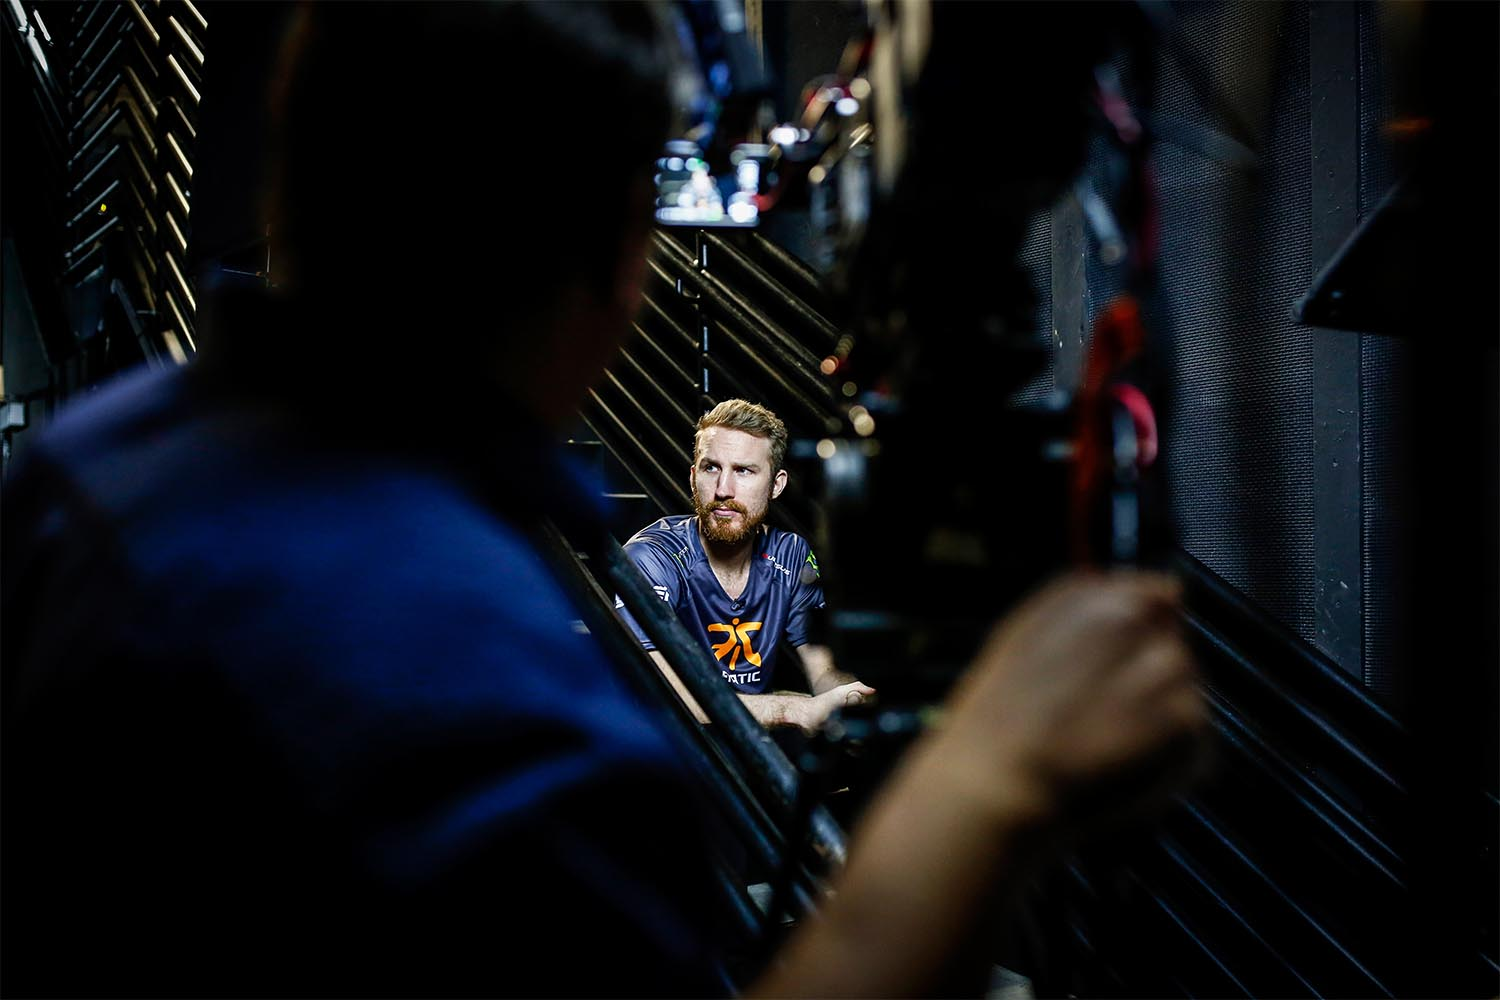 Can Fnatic's Olofmeister pull his team back from the brink?